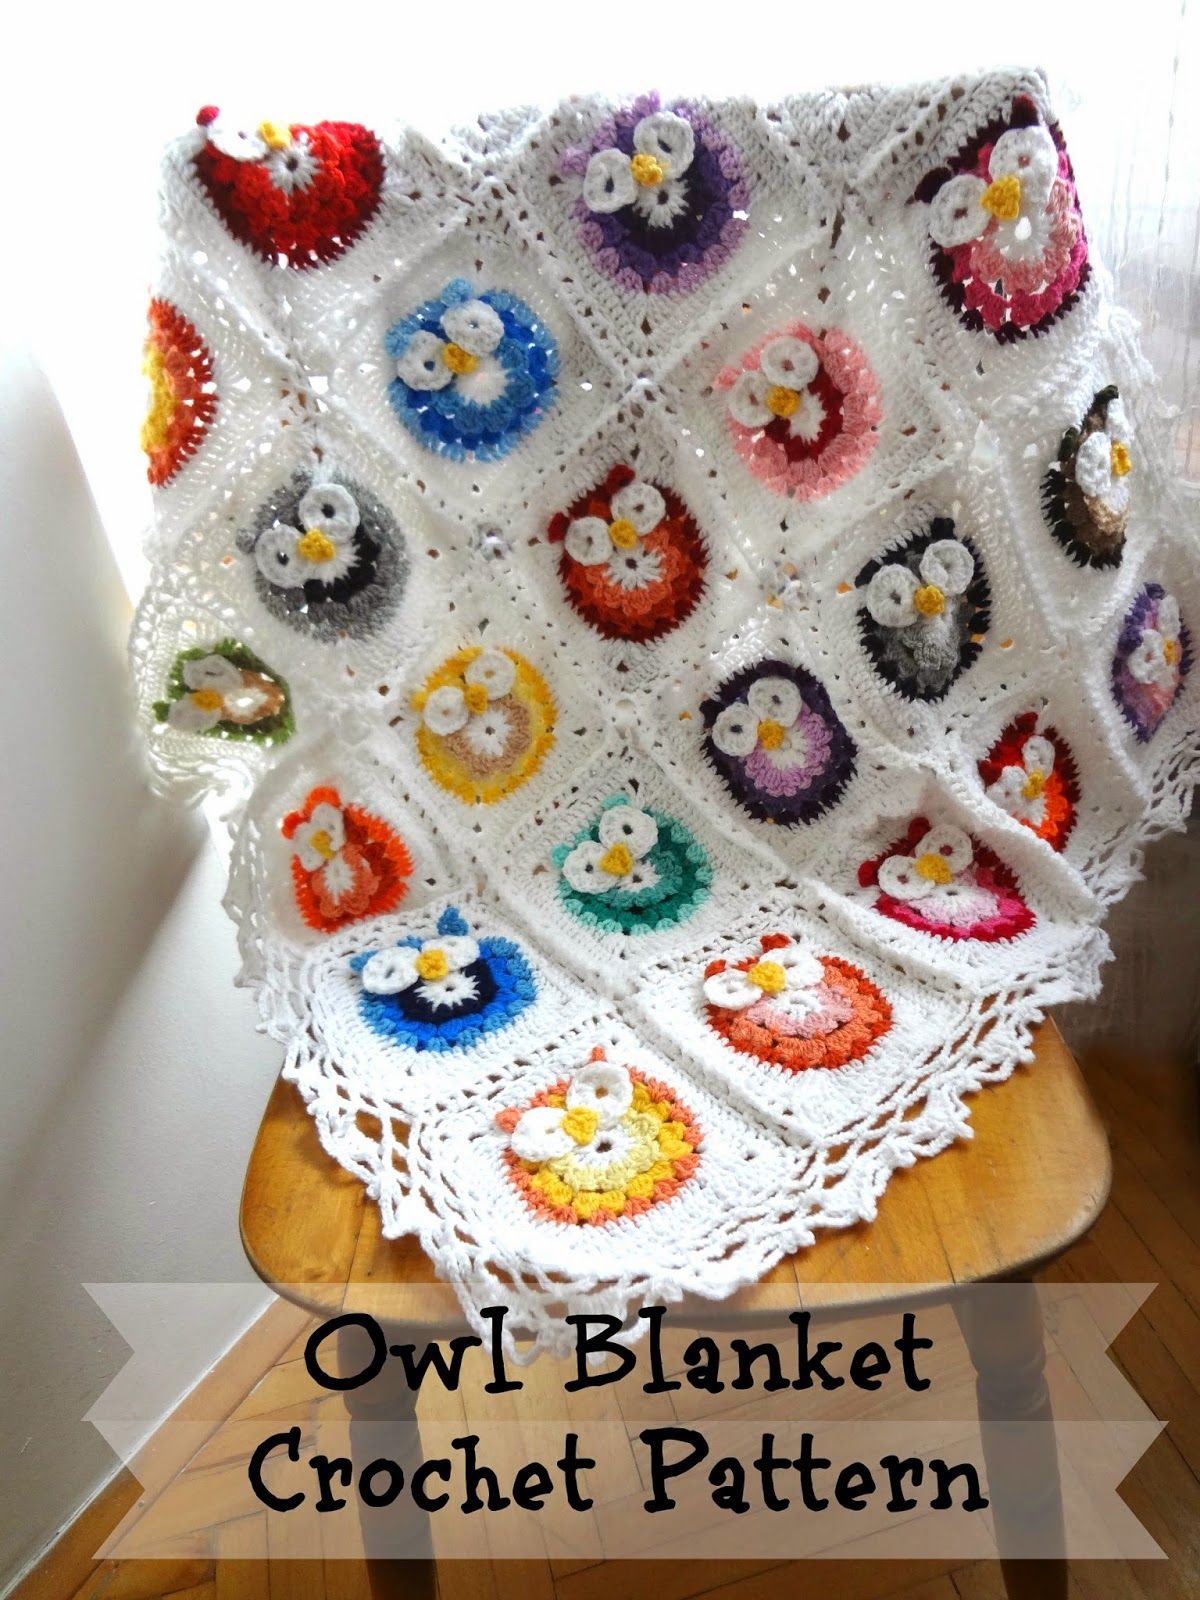 15 Adorable Animal Baby Blanket Crochet Patterns | Pinterest